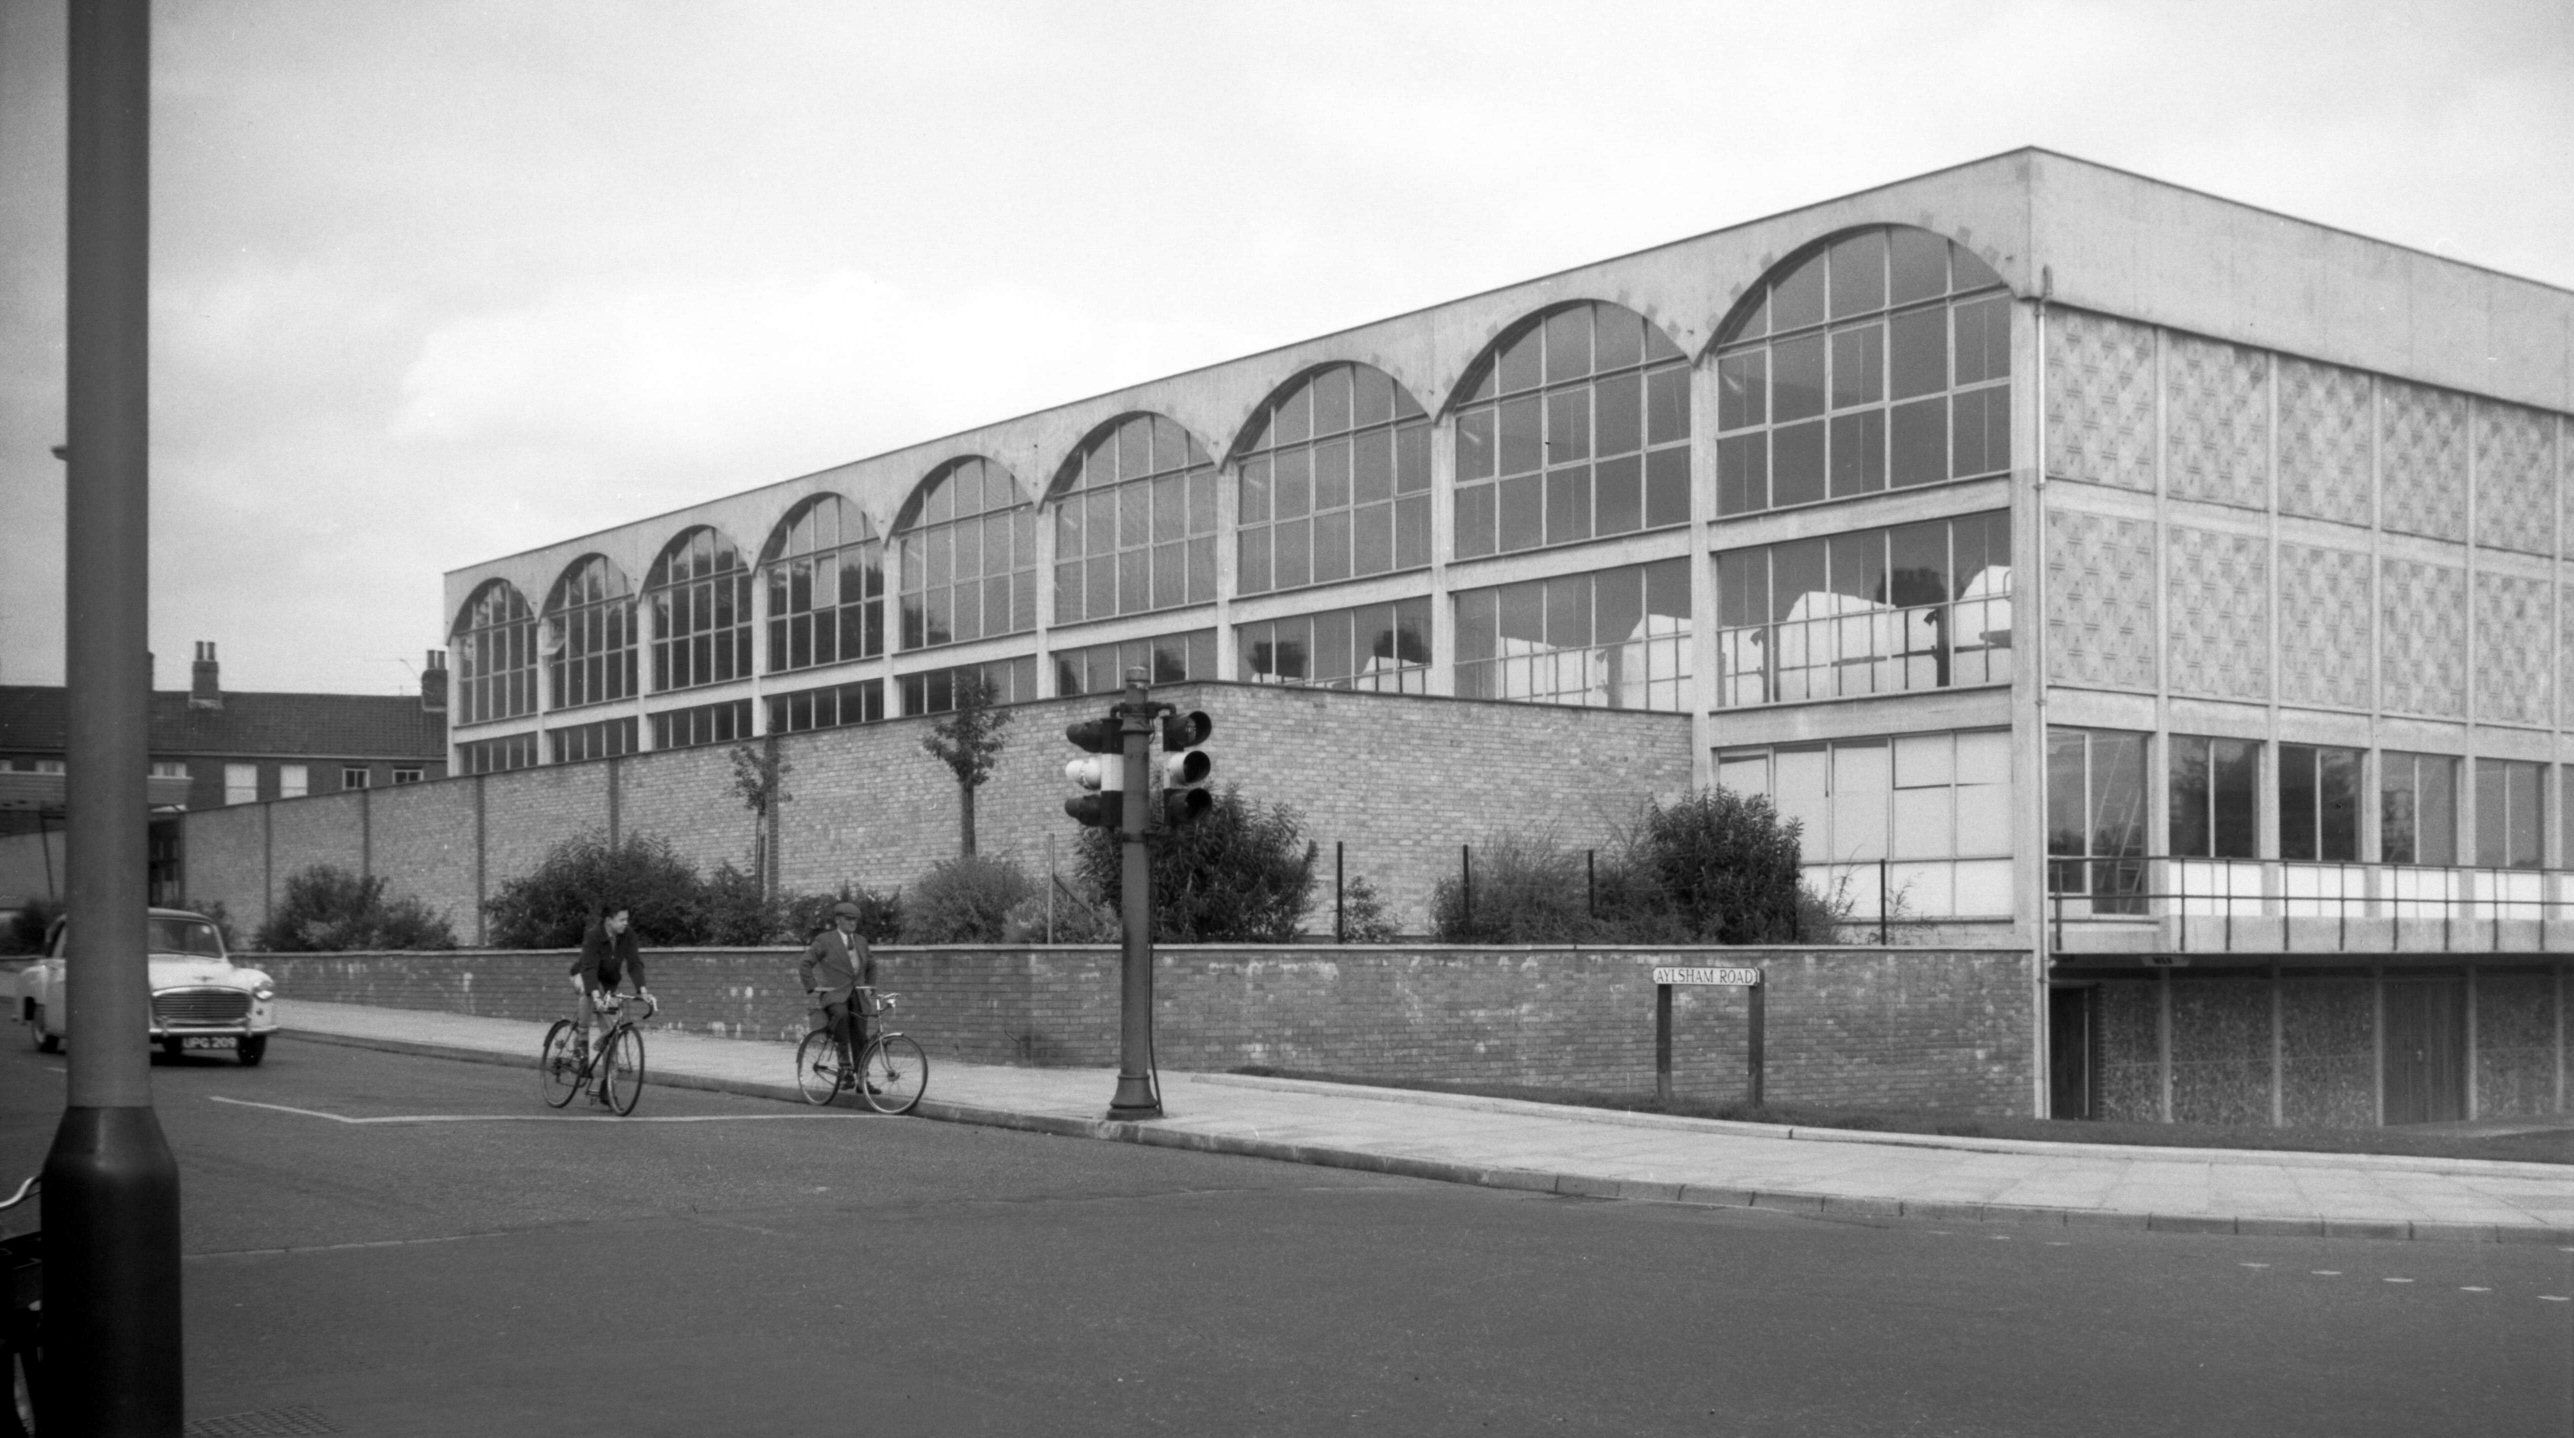 St augustines swimming pool 1962 george plunkett history in 2019 pinterest norfolk for Hotels in norwich with swimming pools